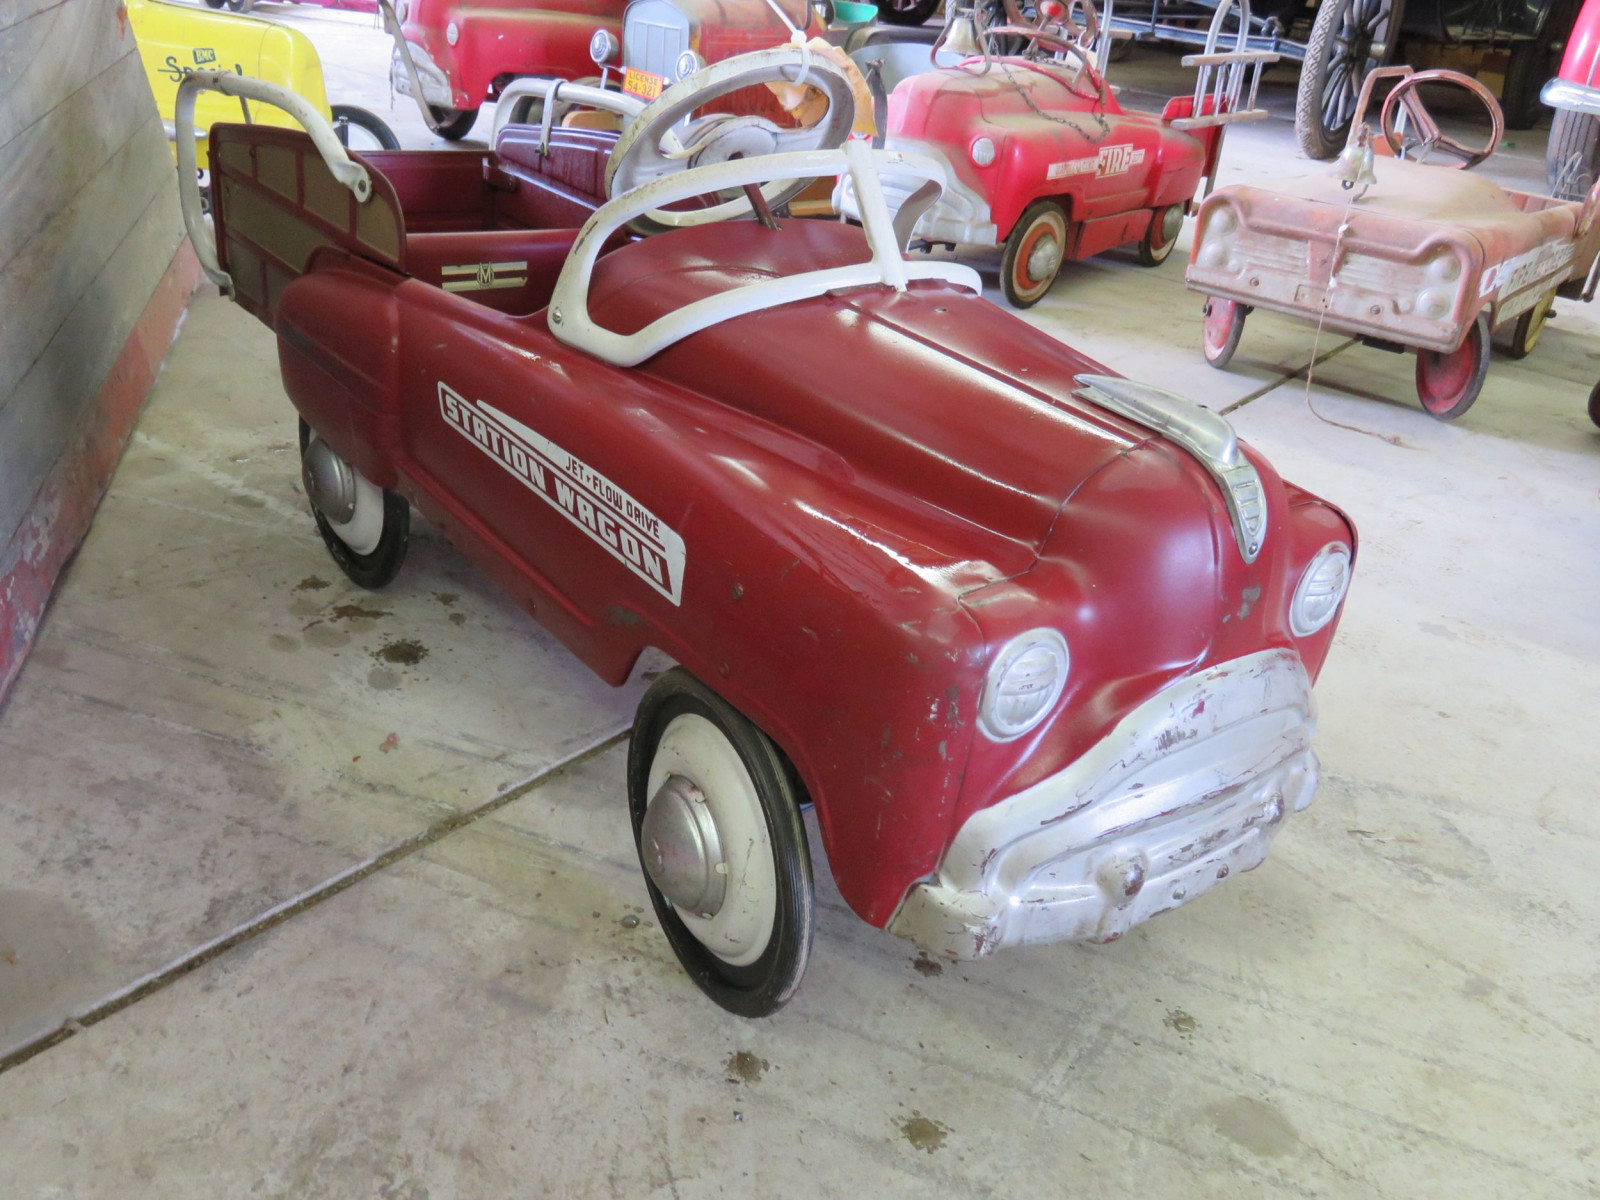 1955 Murray Station Wagon Pedal Car - Image 3